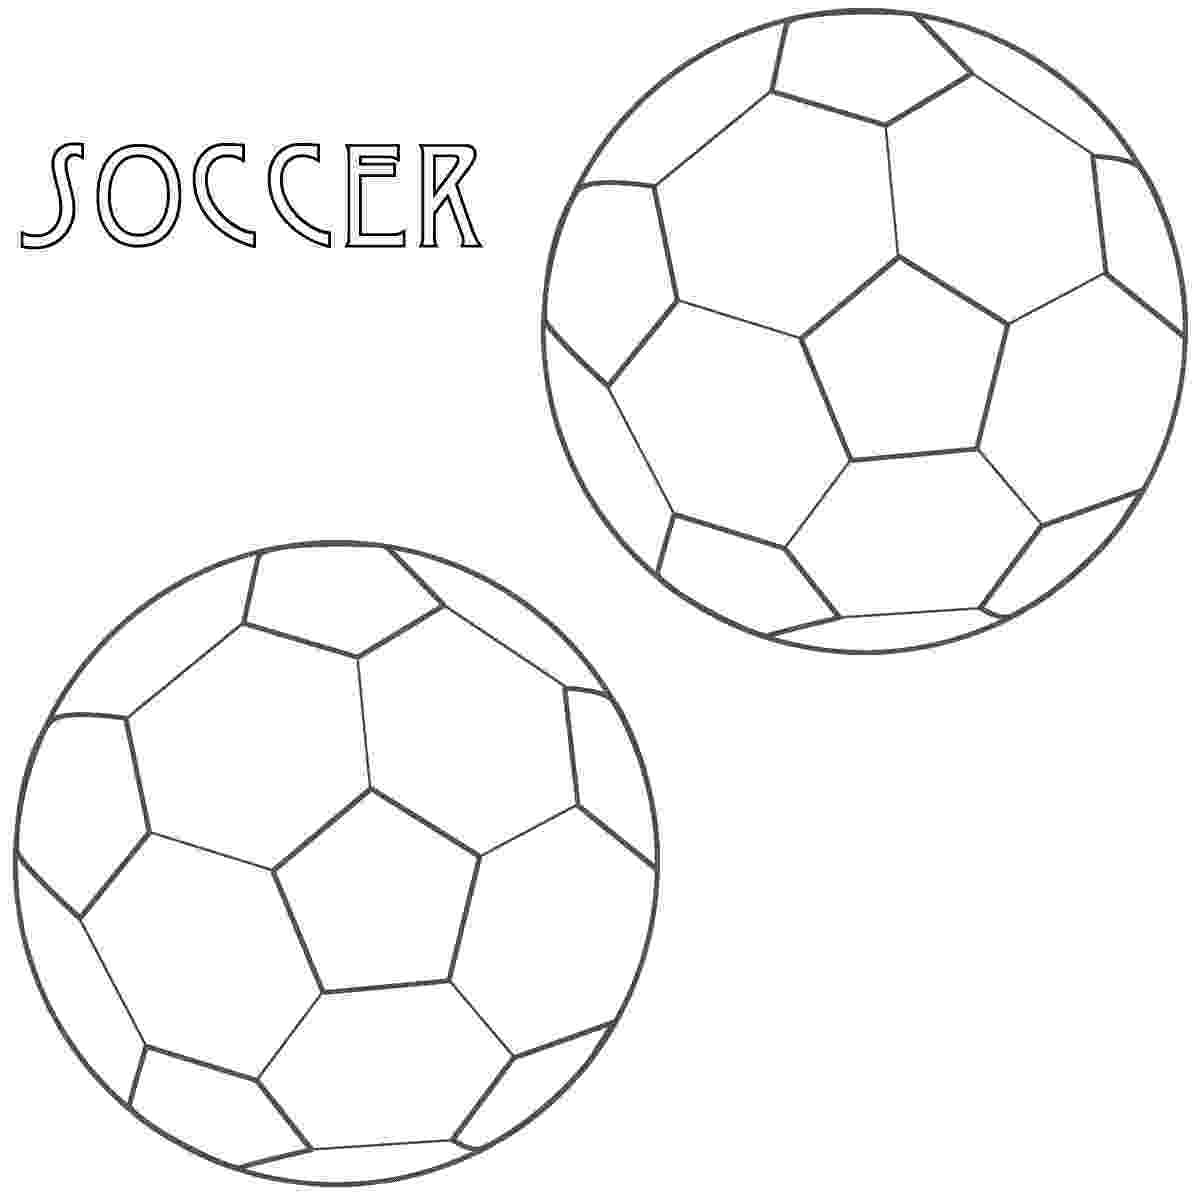 soccer coloring pages for kids free printable soccer coloring pages for kids for kids soccer pages coloring